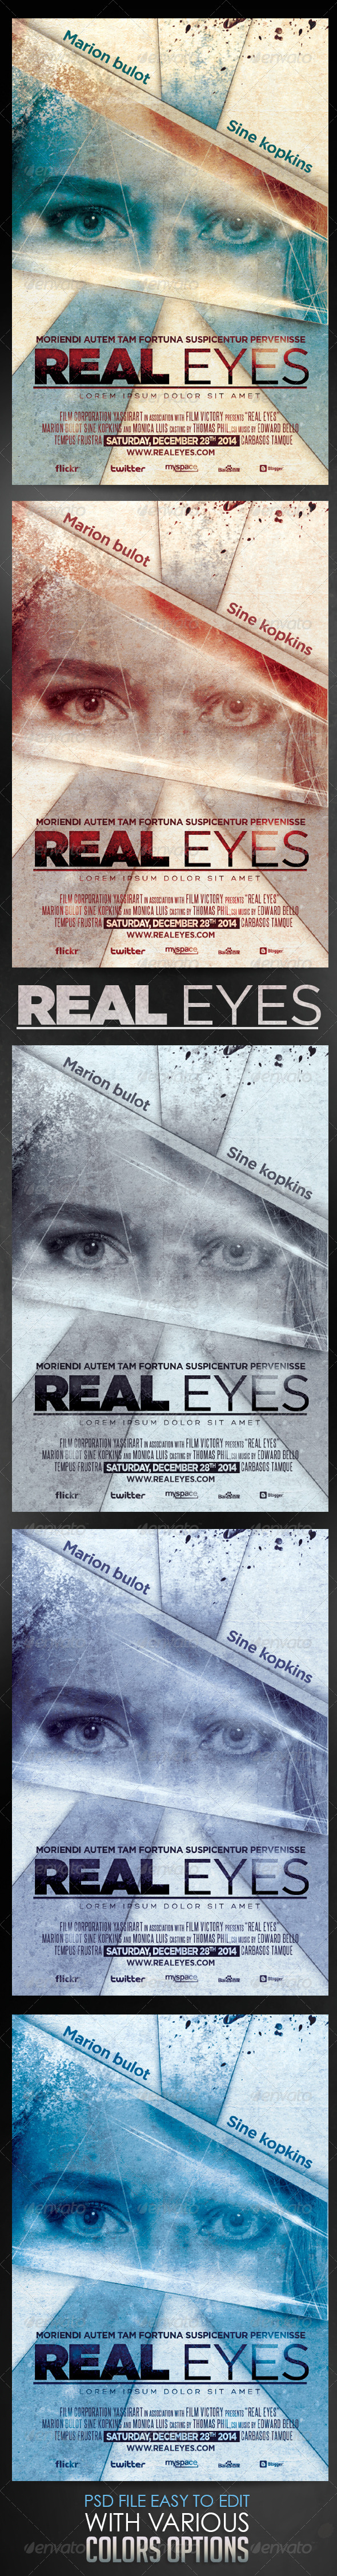 Real Eyes Film Template - Events Flyers